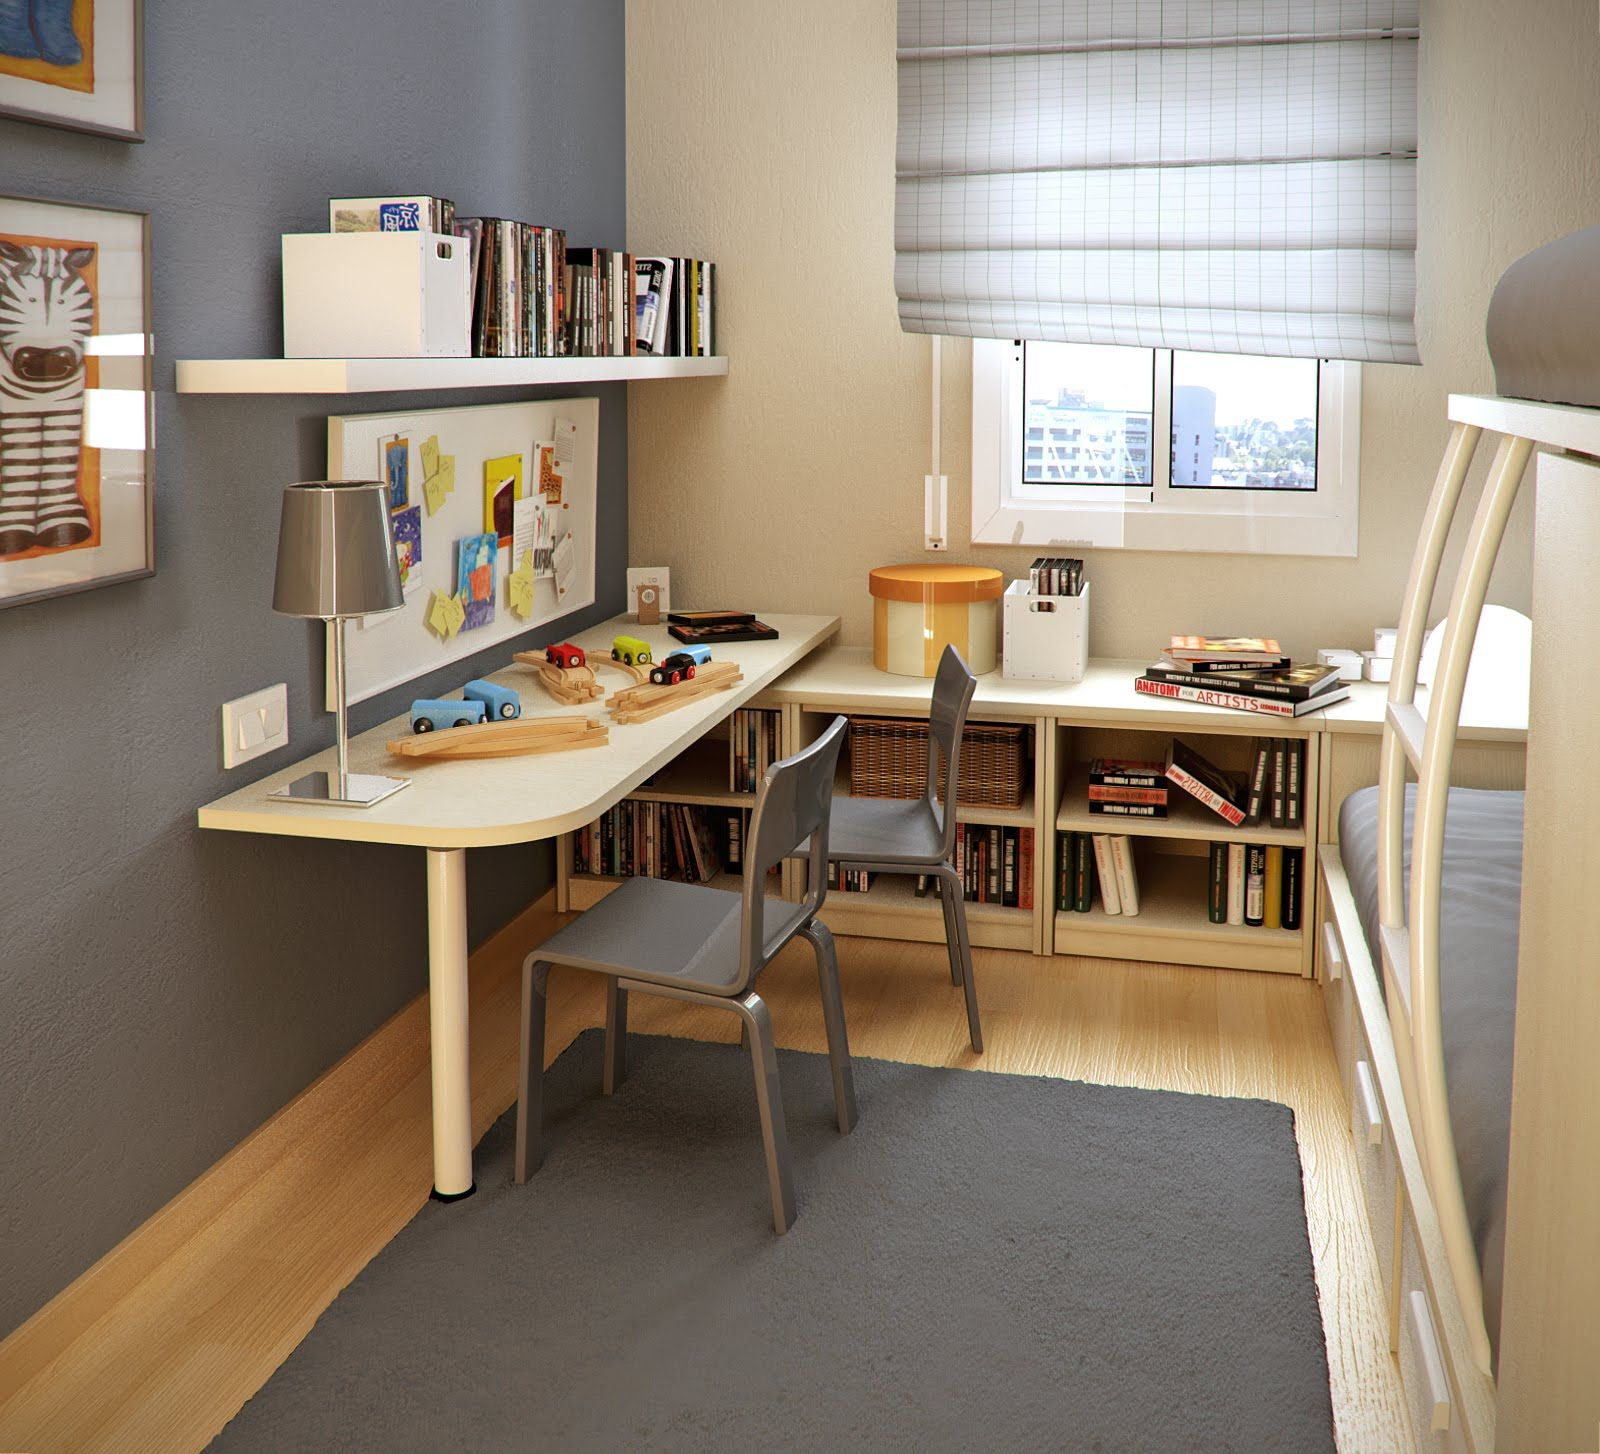 Small Floorspace Kids Rooms How I Will Live One Day Small